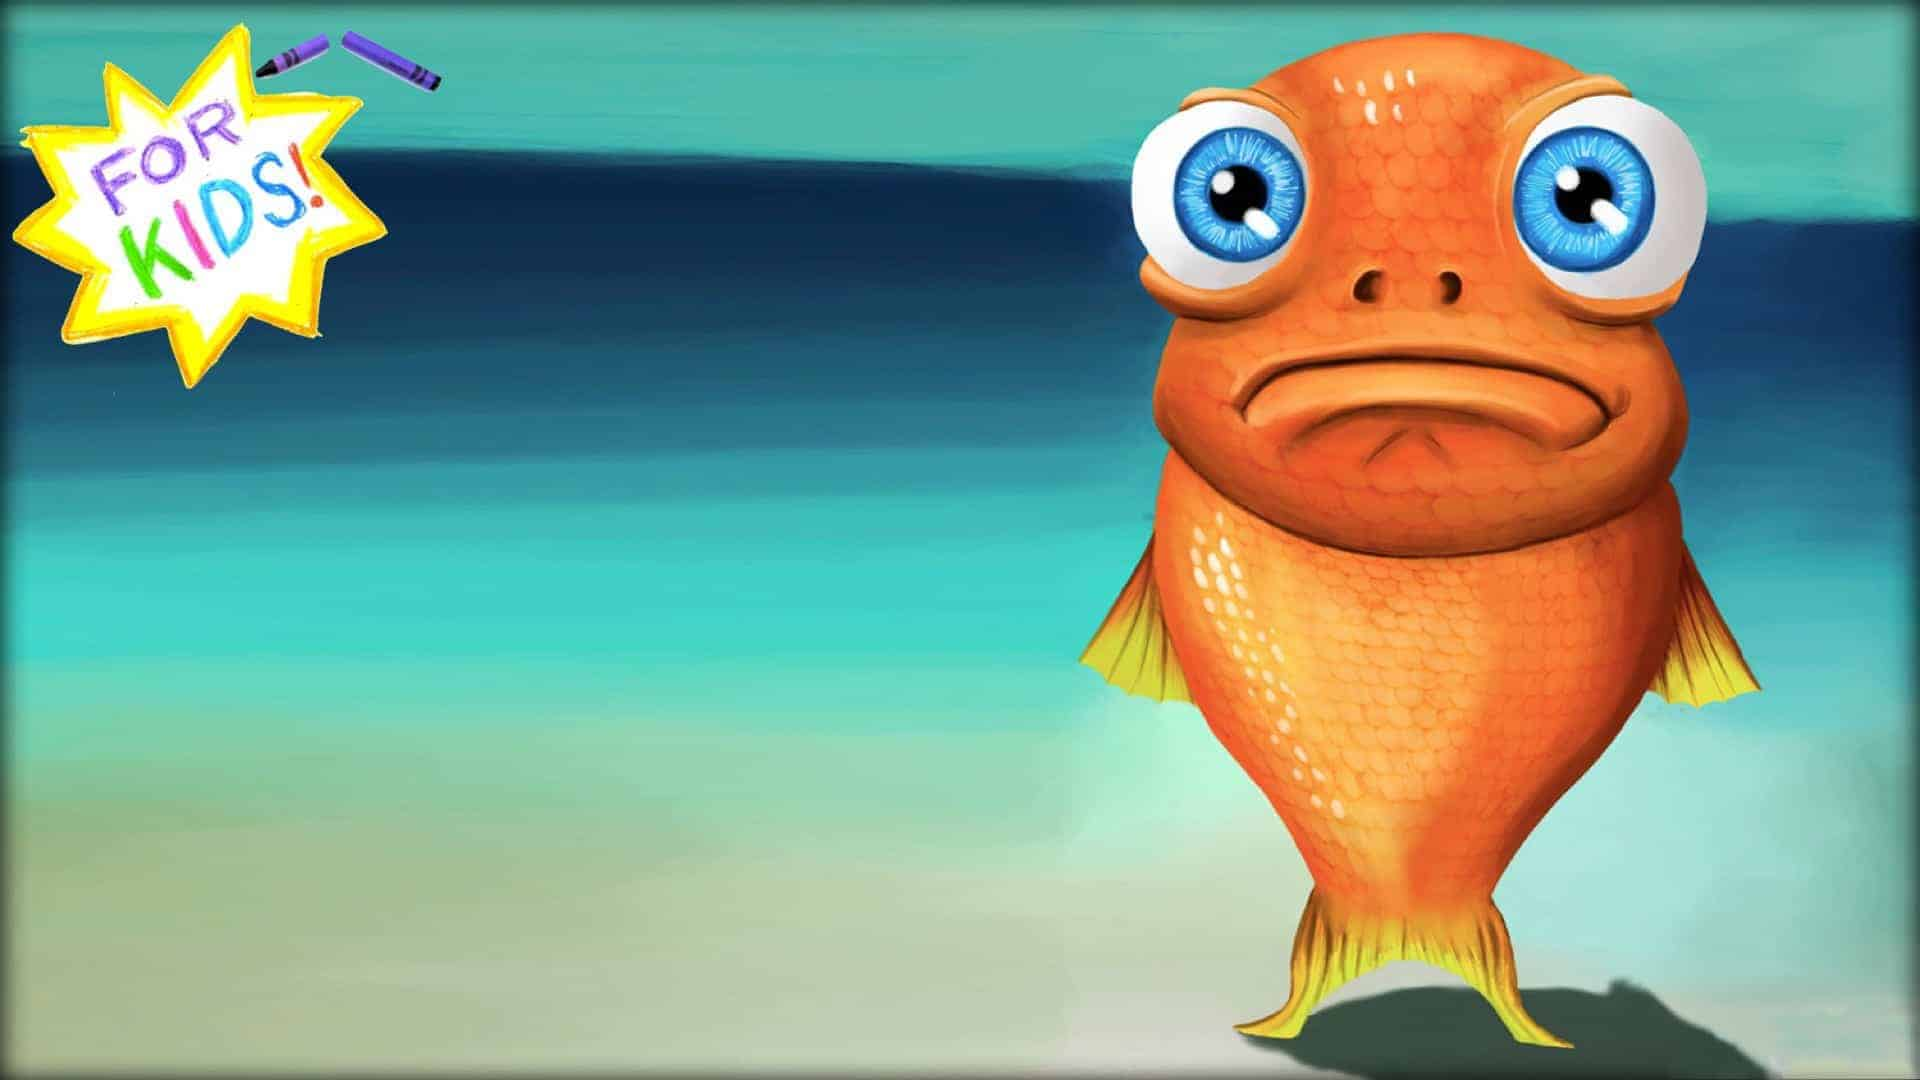 """A cartoon goldfish with sad eyes and downturned mouth is stood upright. Using the tips of its tail as feet. It is looking directly into the camera. In the top left hand corner is a yellow and white star, rendered in crayon with the words """"For Kids"""" across the center."""